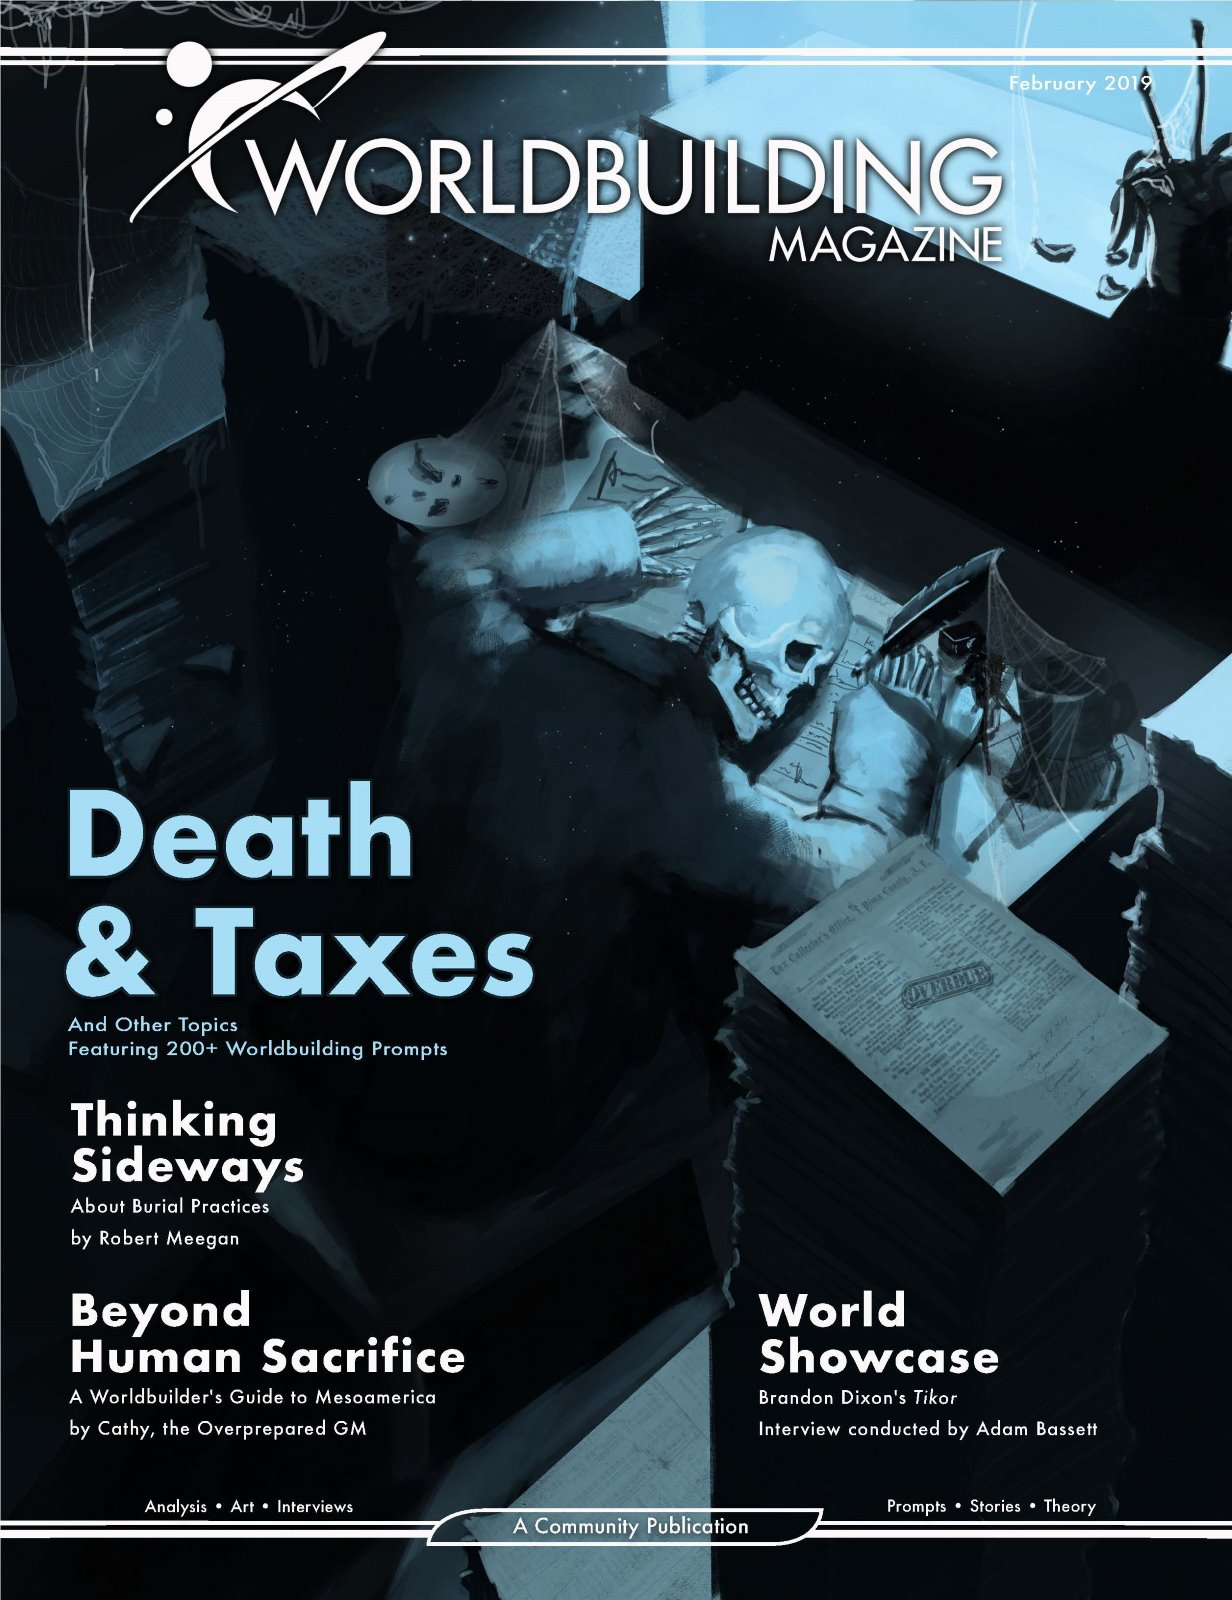 Worldbuilding Magazine Volume 3, Issue 1: Death & Taxes